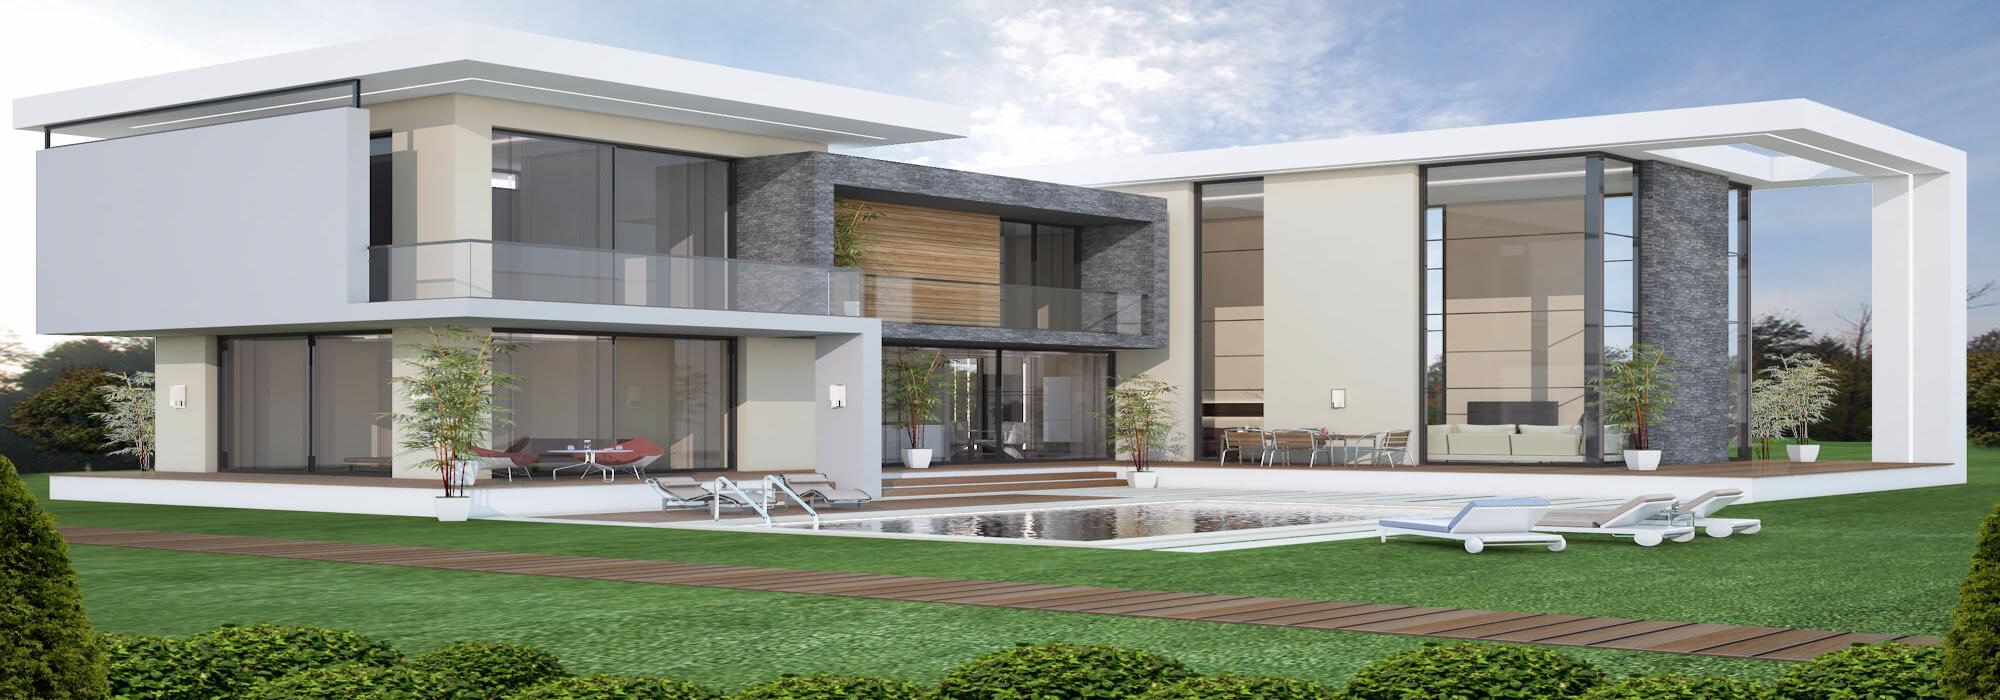 Remarkable 4 Bedroom Villa For Sale Location Bellapais Girne (Turkish Title Deeds)(Home that fits your lifestyle)